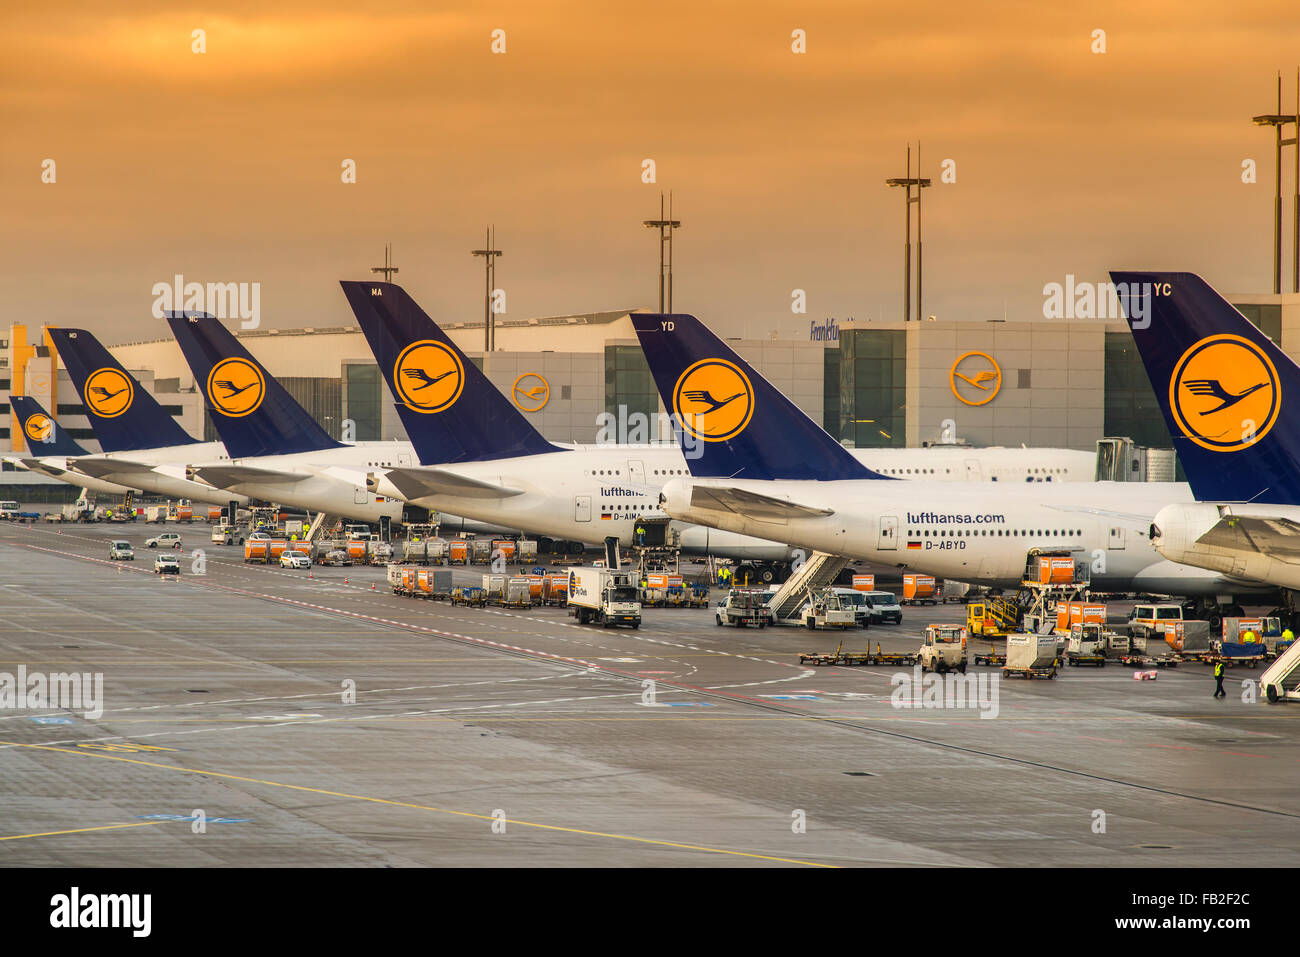 Lufthansa planes at Frankfurt international airport, Frankfurt, Hesse, Germany - Stock Image